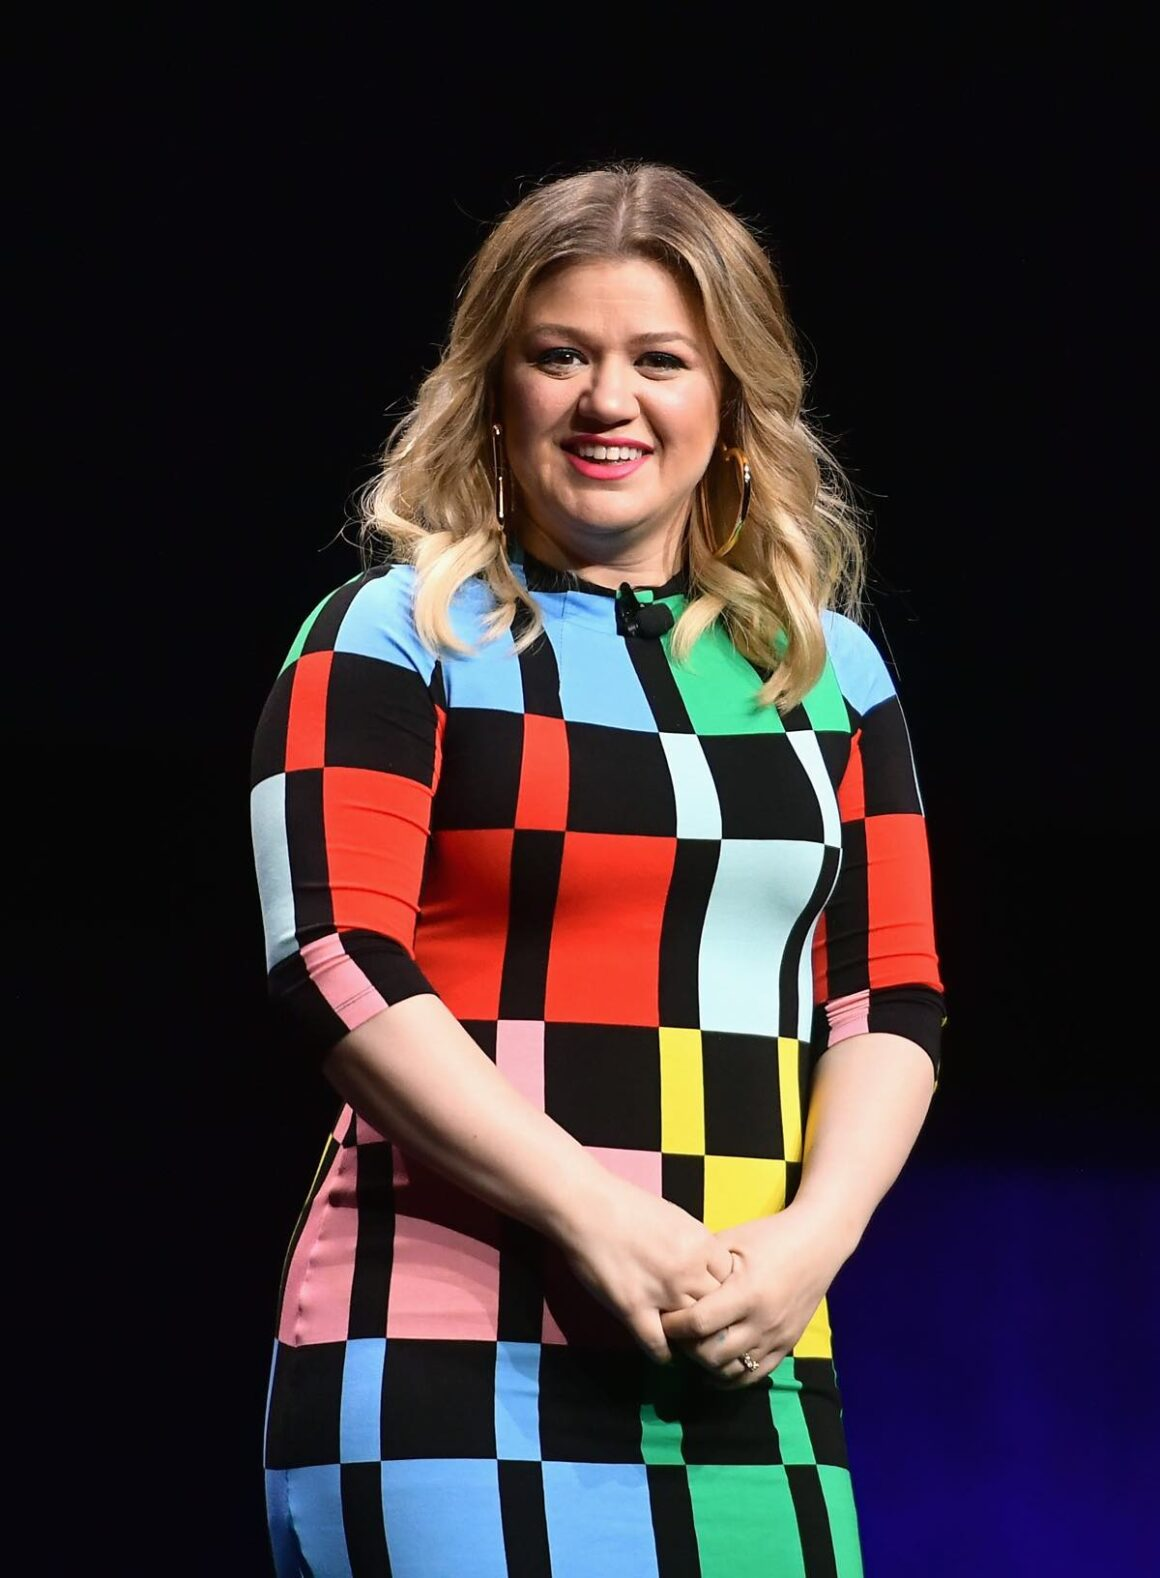 Kelly Clarkson at CinemaCon 2019 - The State of the Industry: Past, Present and Future and STXfilms Presentation